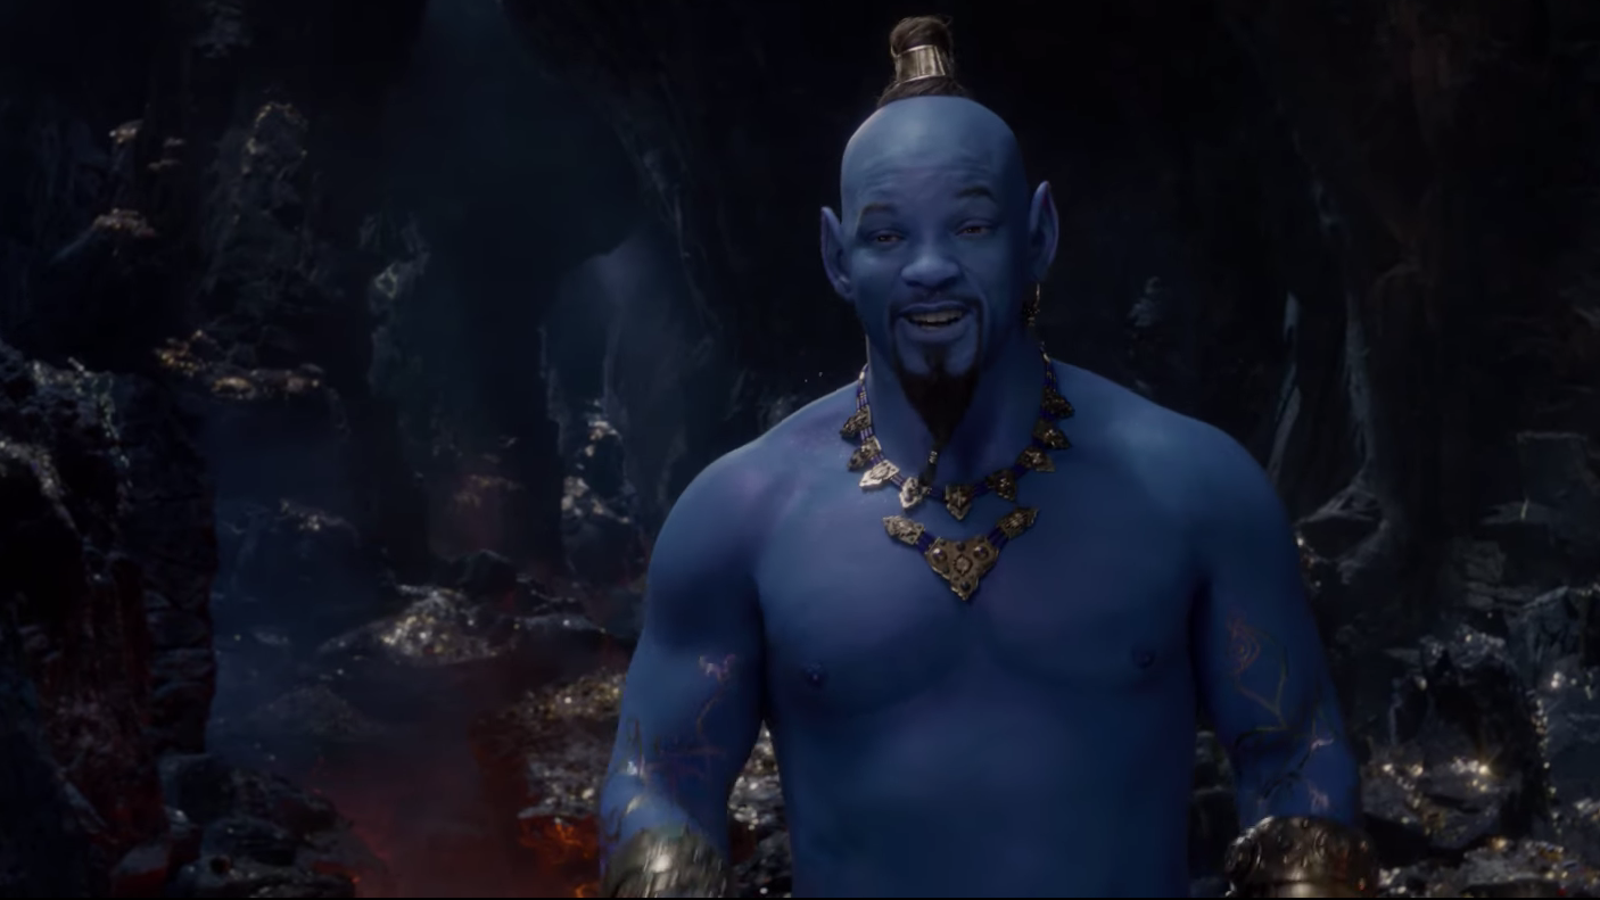 Will Smith sure is looking blue in the new Aladdin teaser